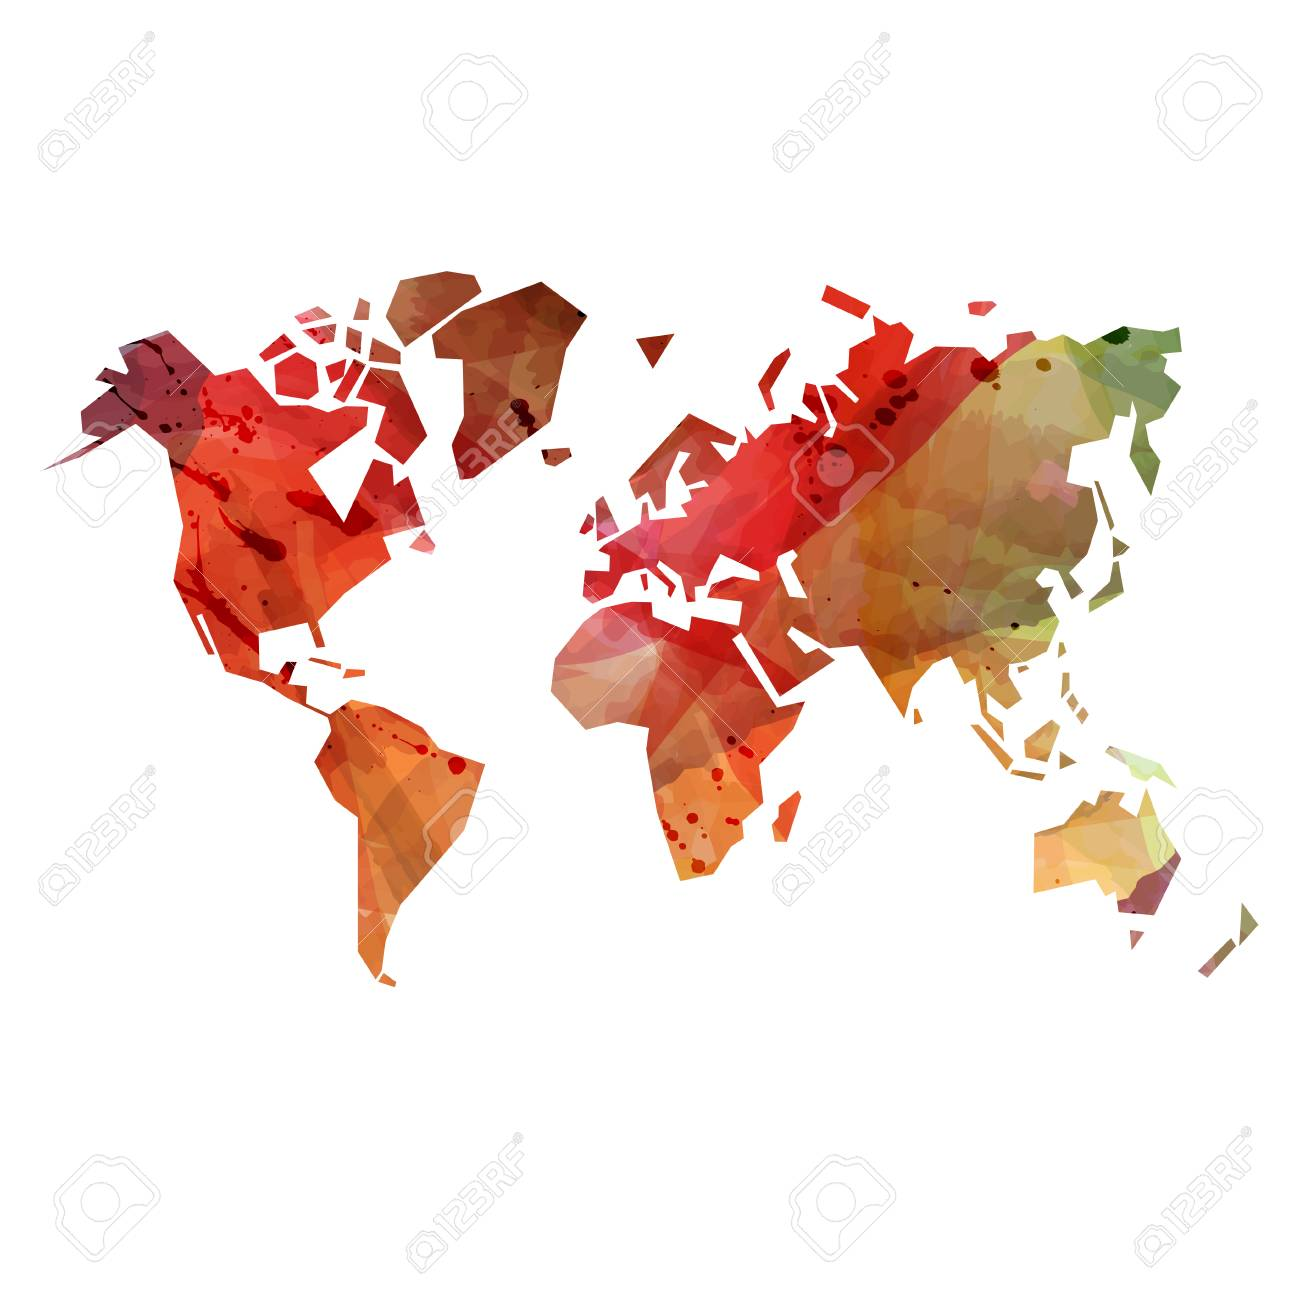 Abstract Colorful Watercolor Background With World Map Silhouette ...